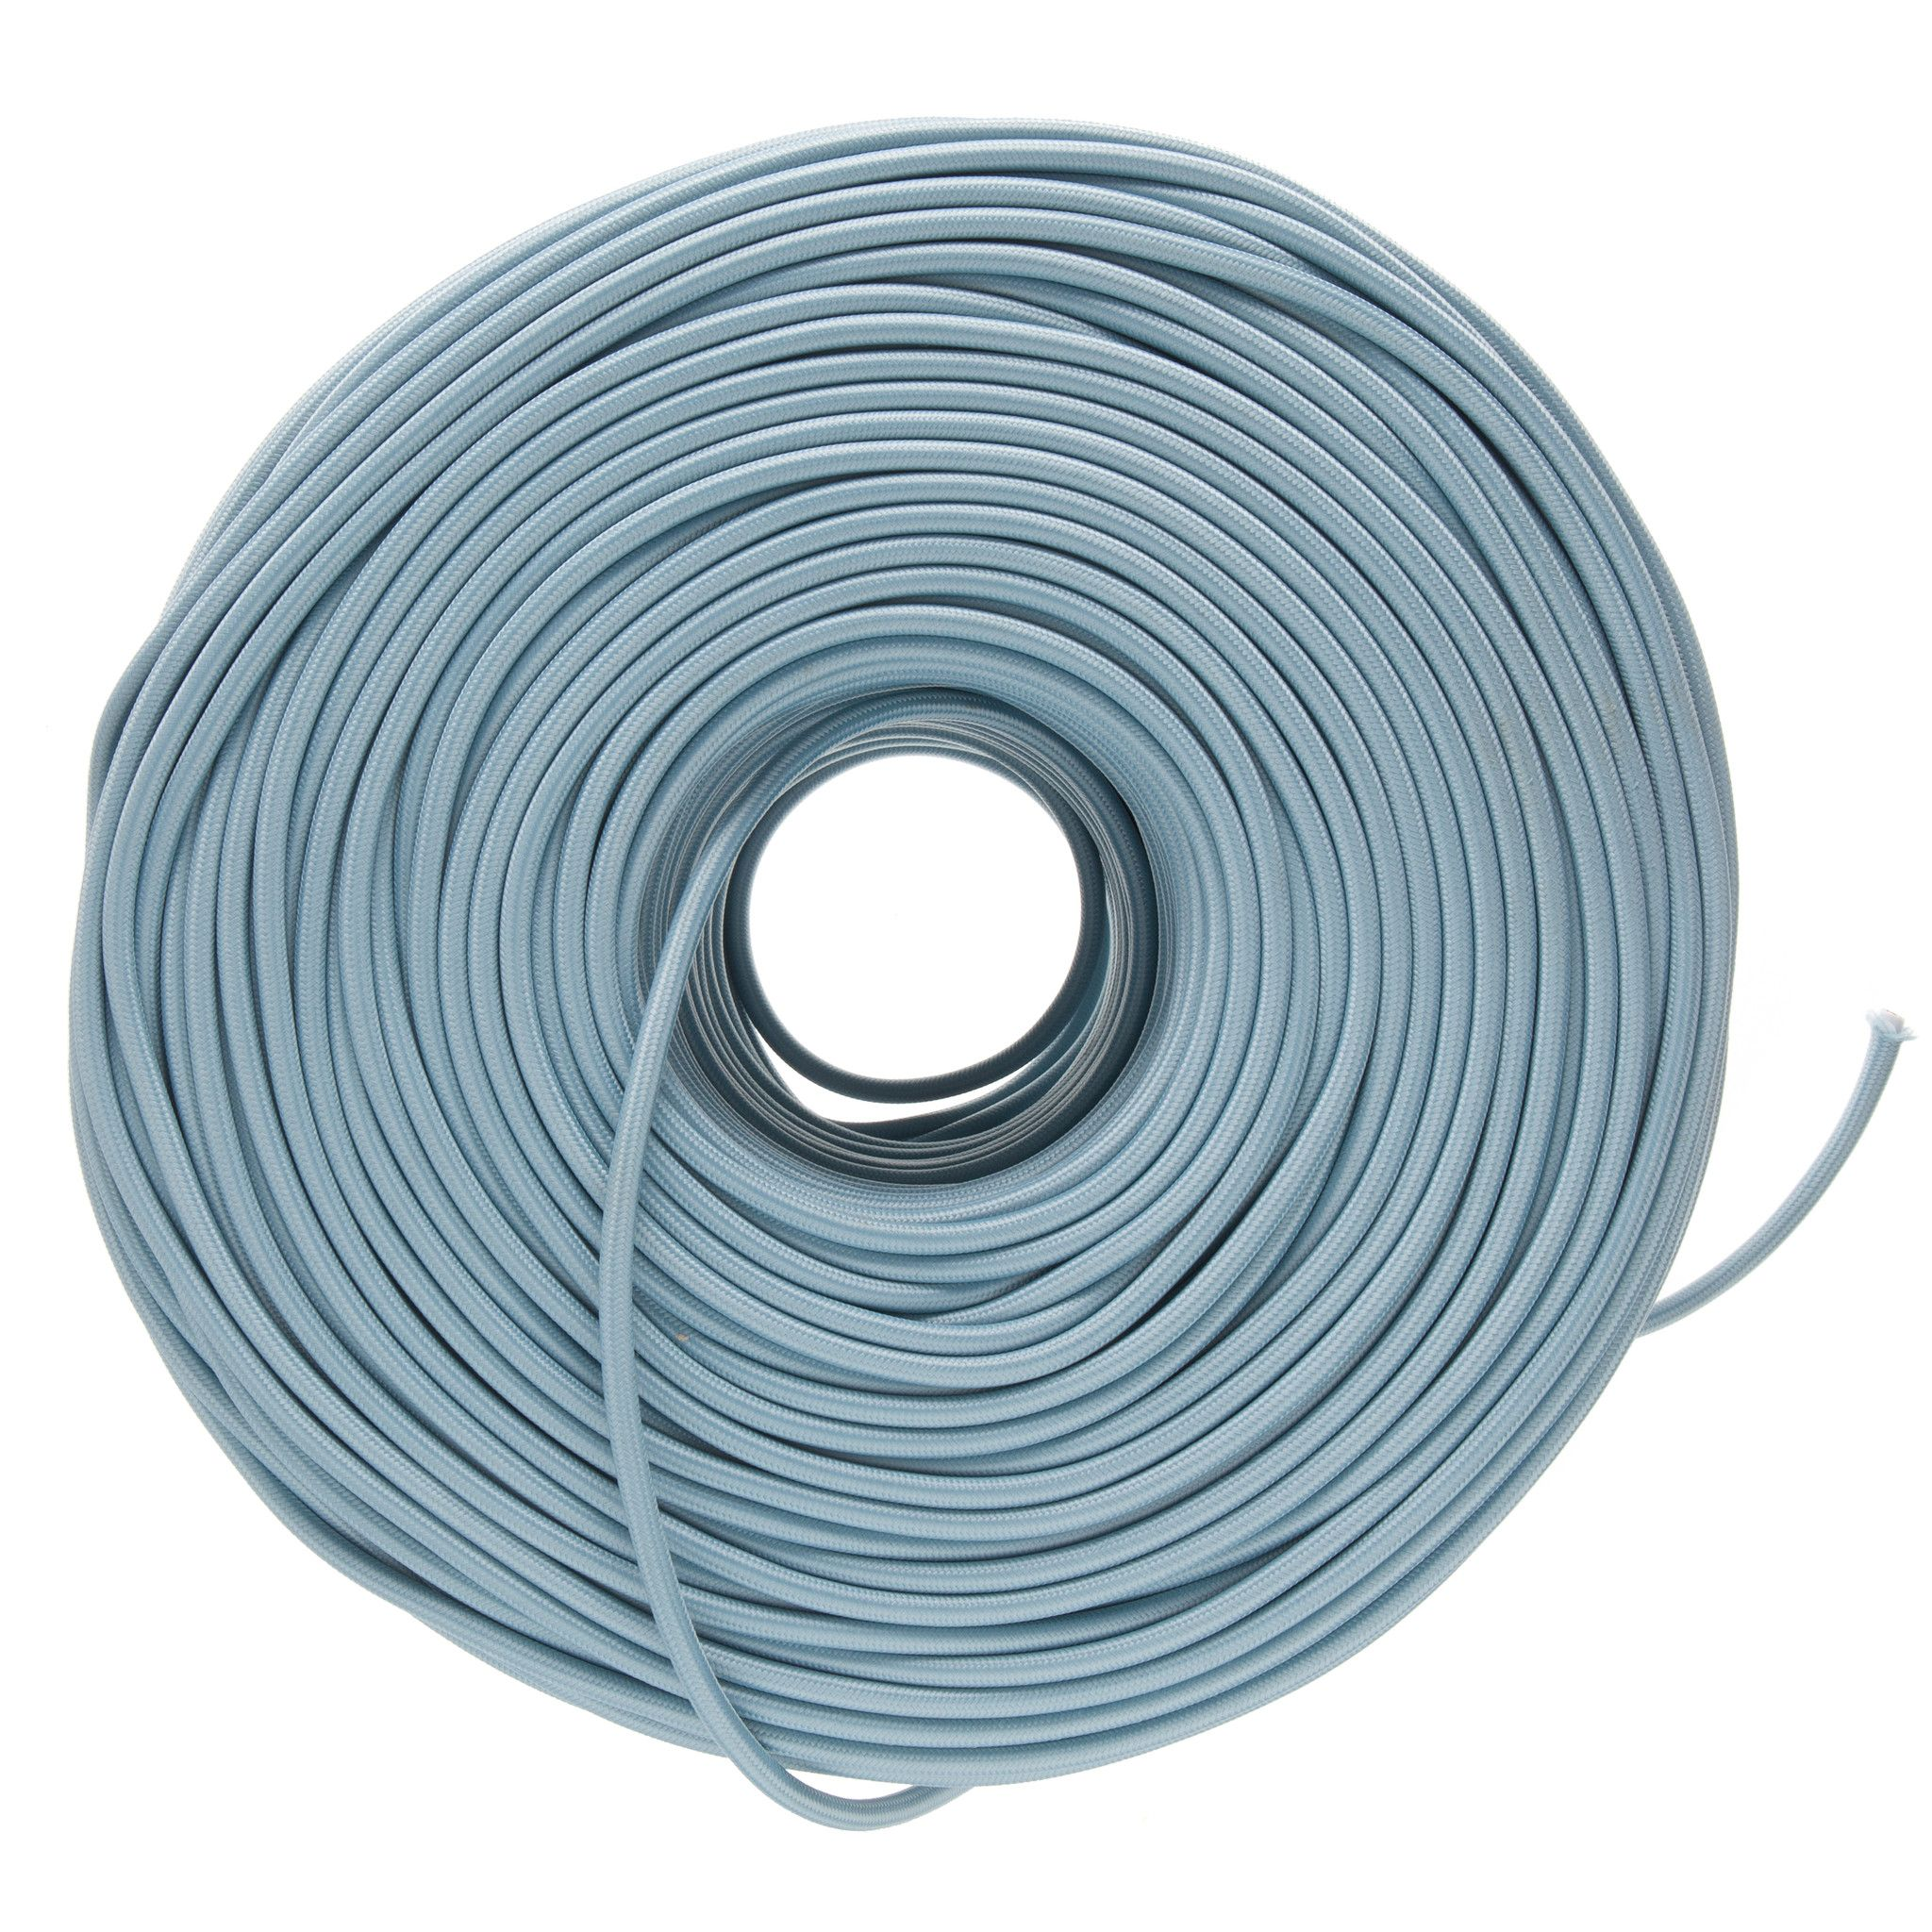 Cloth Covered Electrical Wire - Shale | Color Cord Company